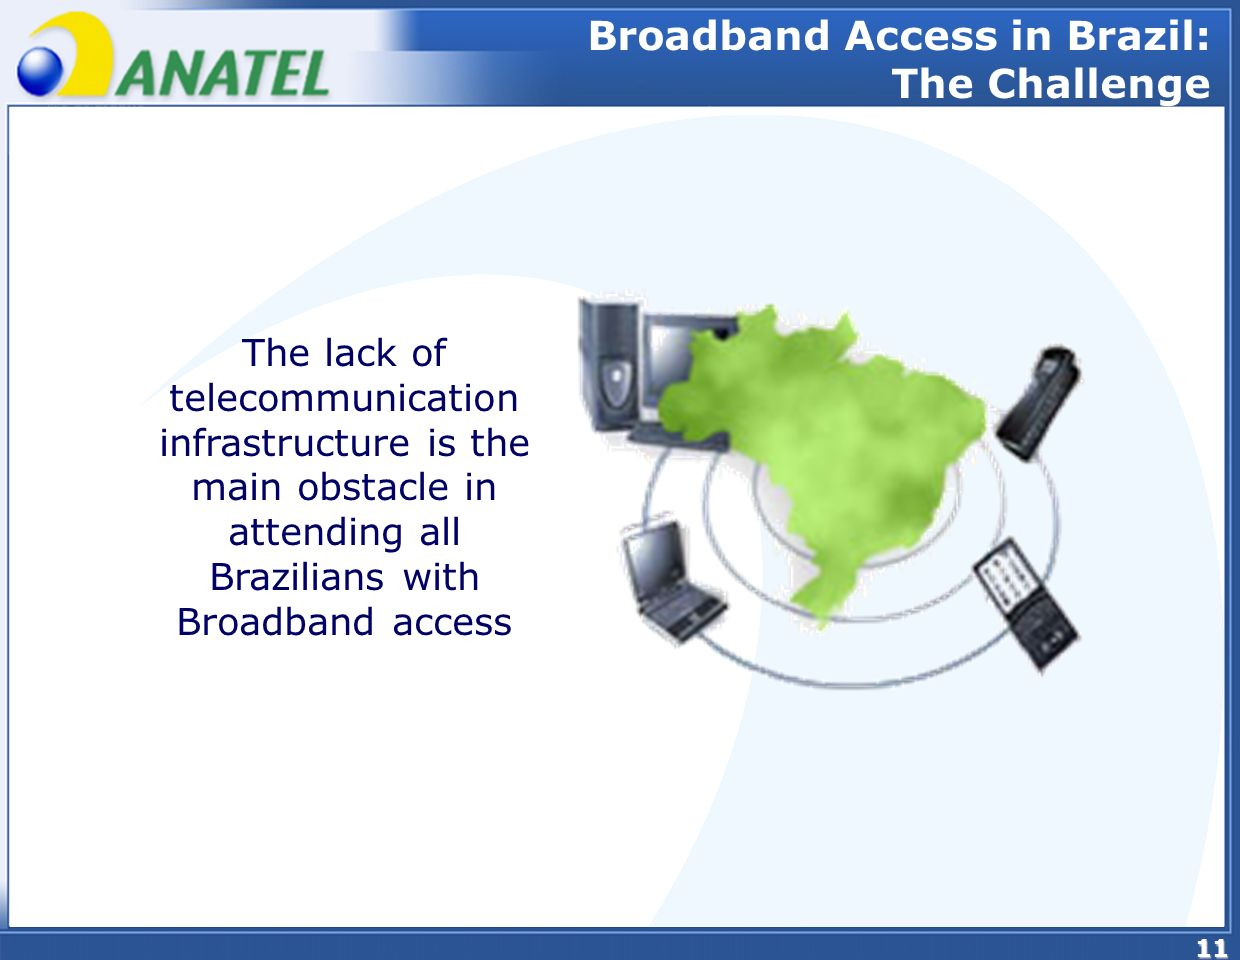 11 The lack of telecommunication infrastructure is the main obstacle in attending all Brazilians with Broadband access Broadband Access in Brazil: The Challenge